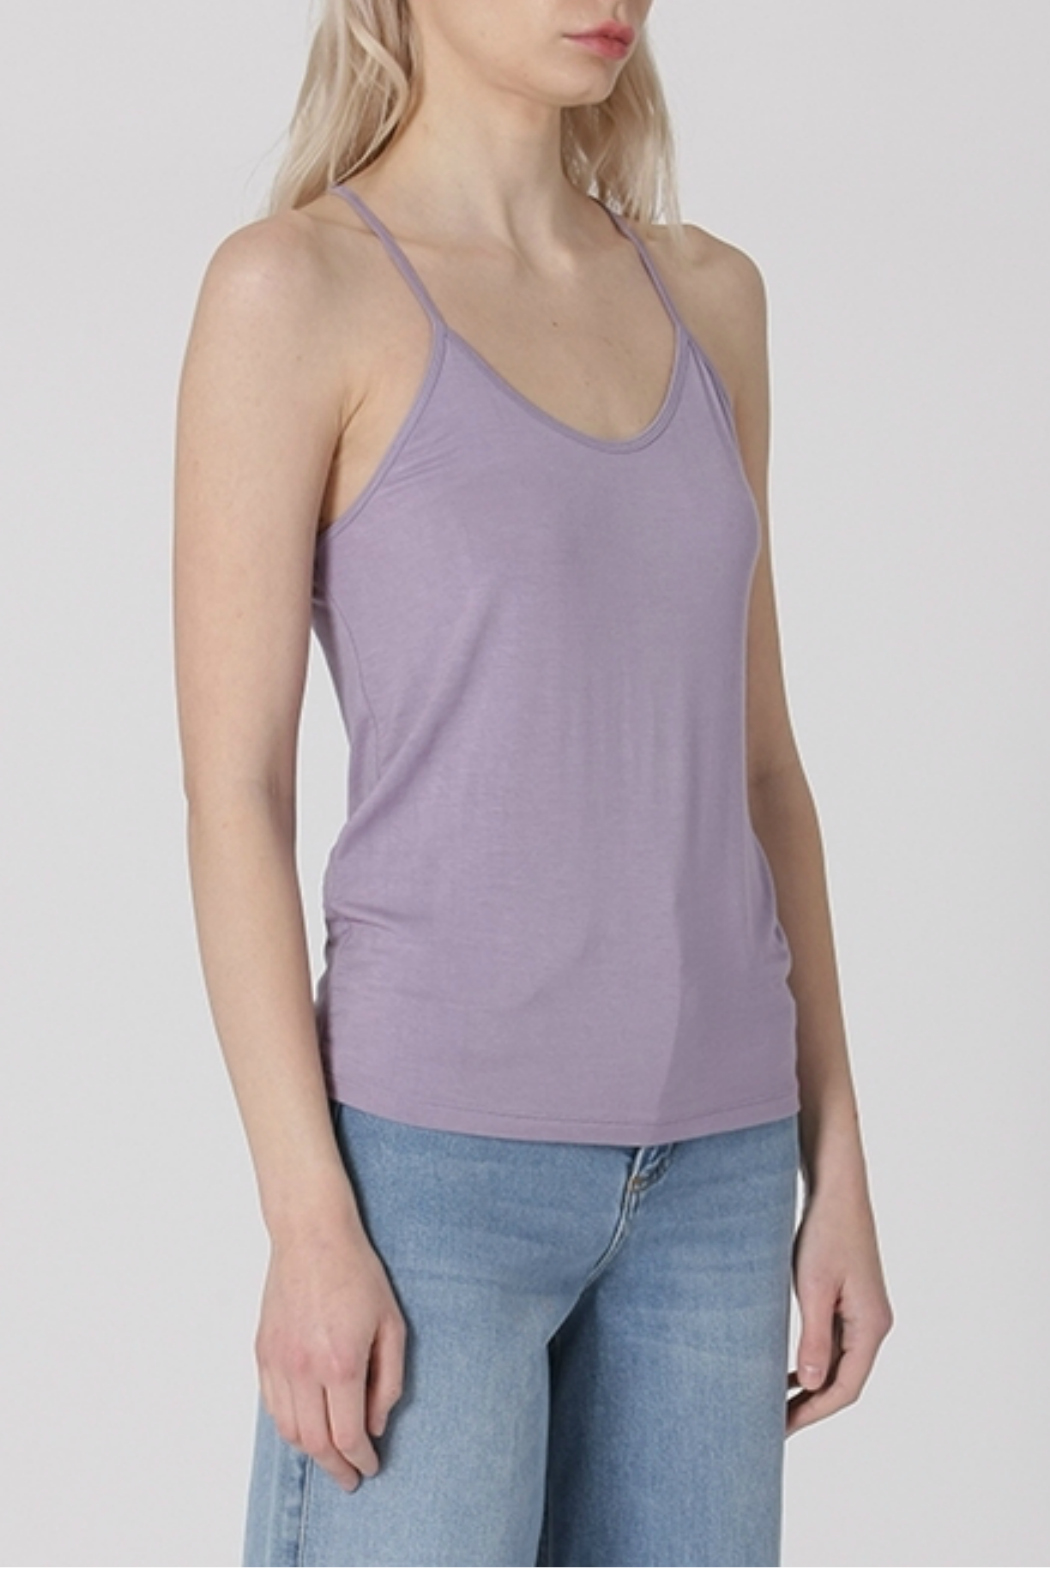 HYFVE Strappy racerback tank top - Front Cropped Image